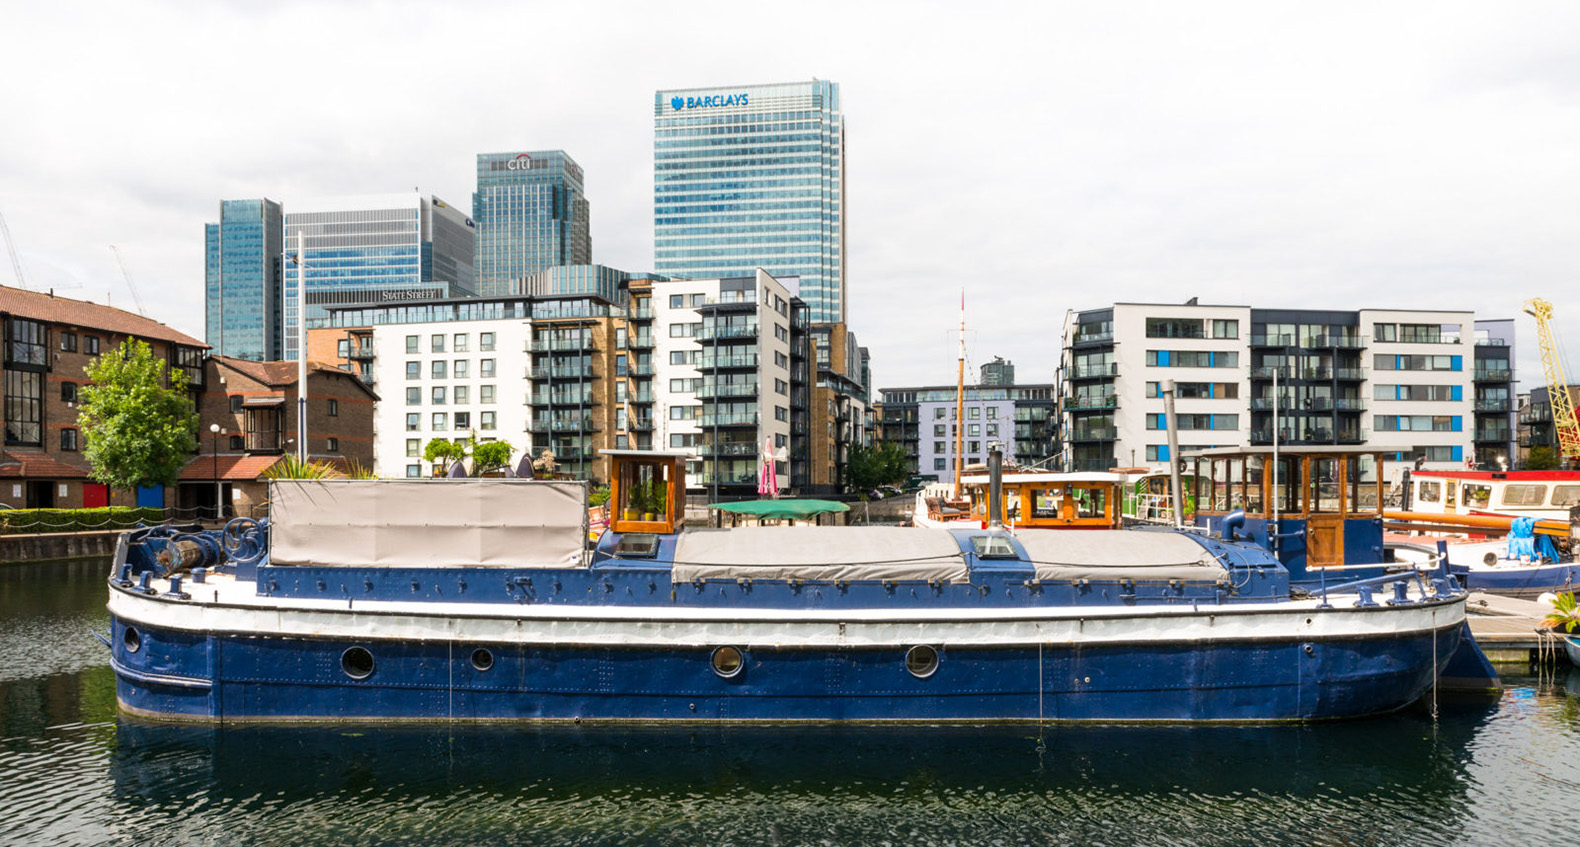 Coal Barge In London Converted Into A Sophisticated